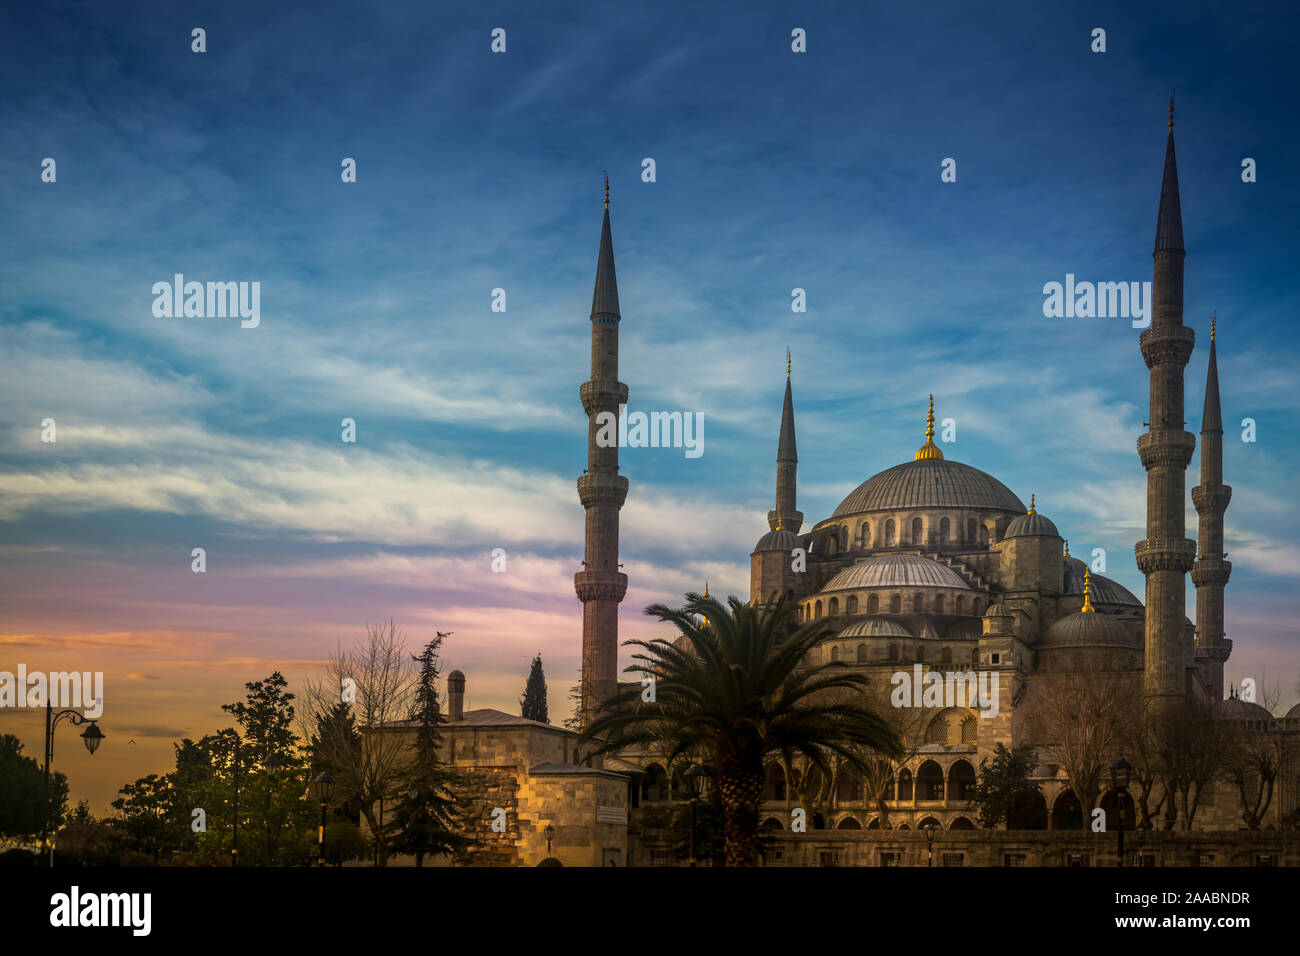 Ahmet High Resolution Stock Photography And Images Page 5 Alamy